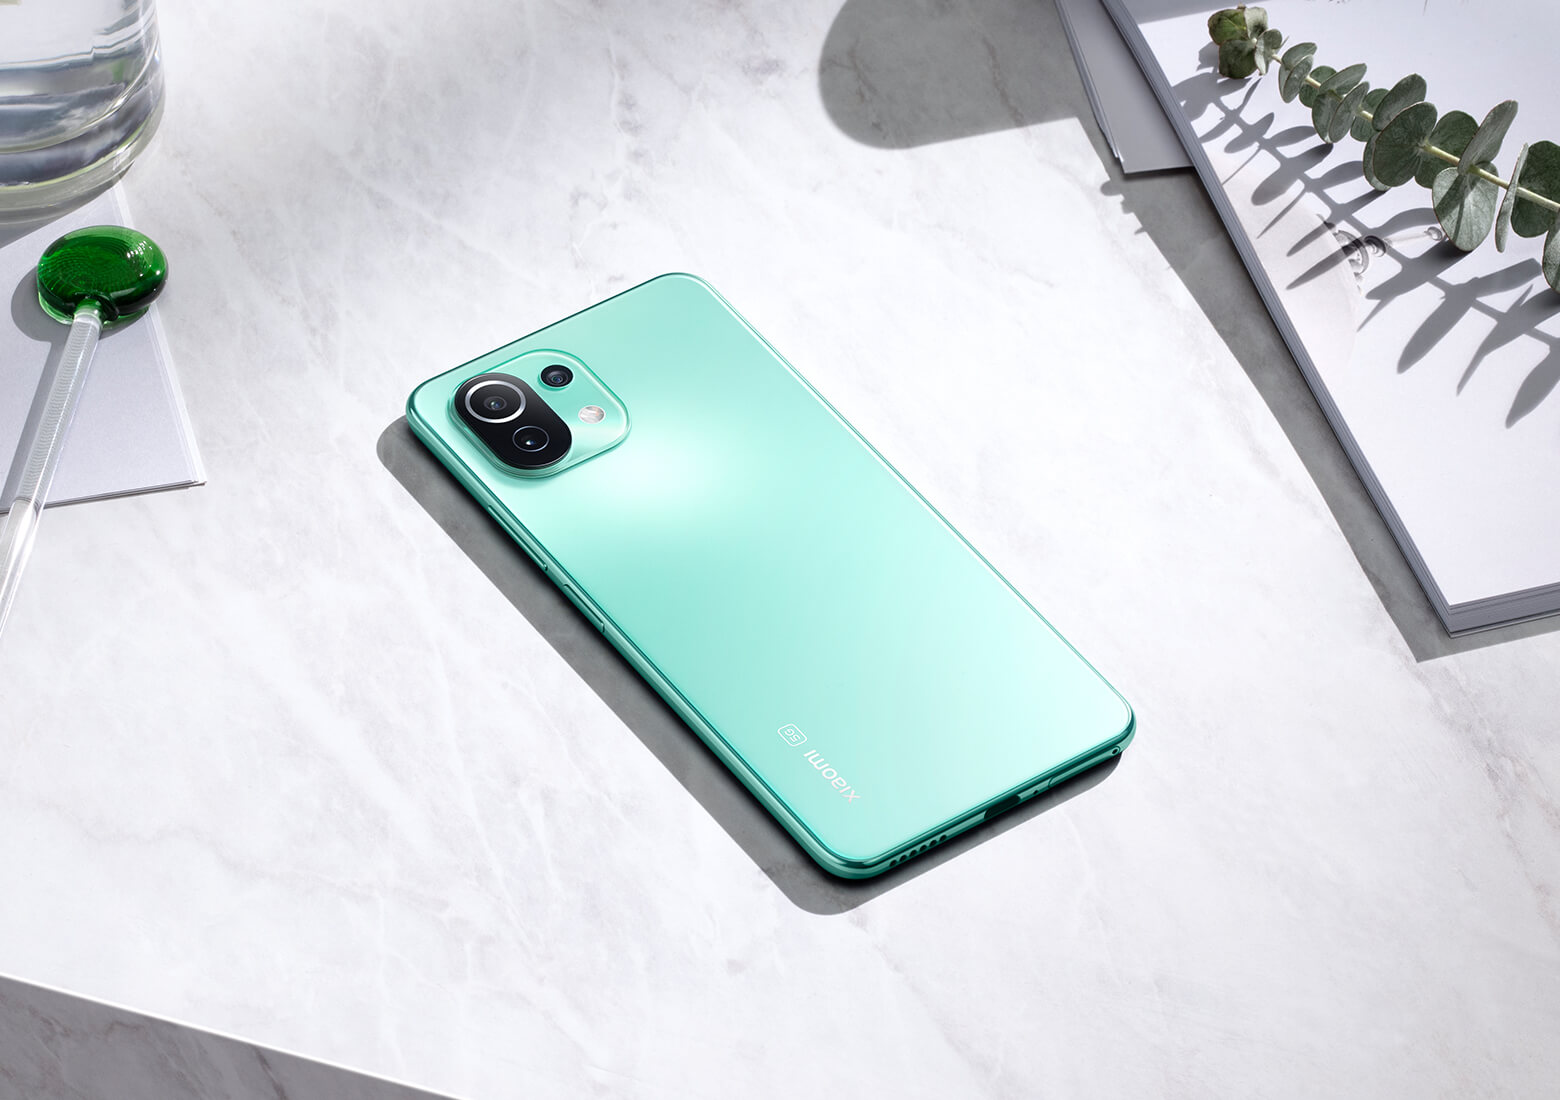 https://i01.appmifile.com/webfile/globalimg/products/pc/mi-11-lite-5g/overview06_01.jpg